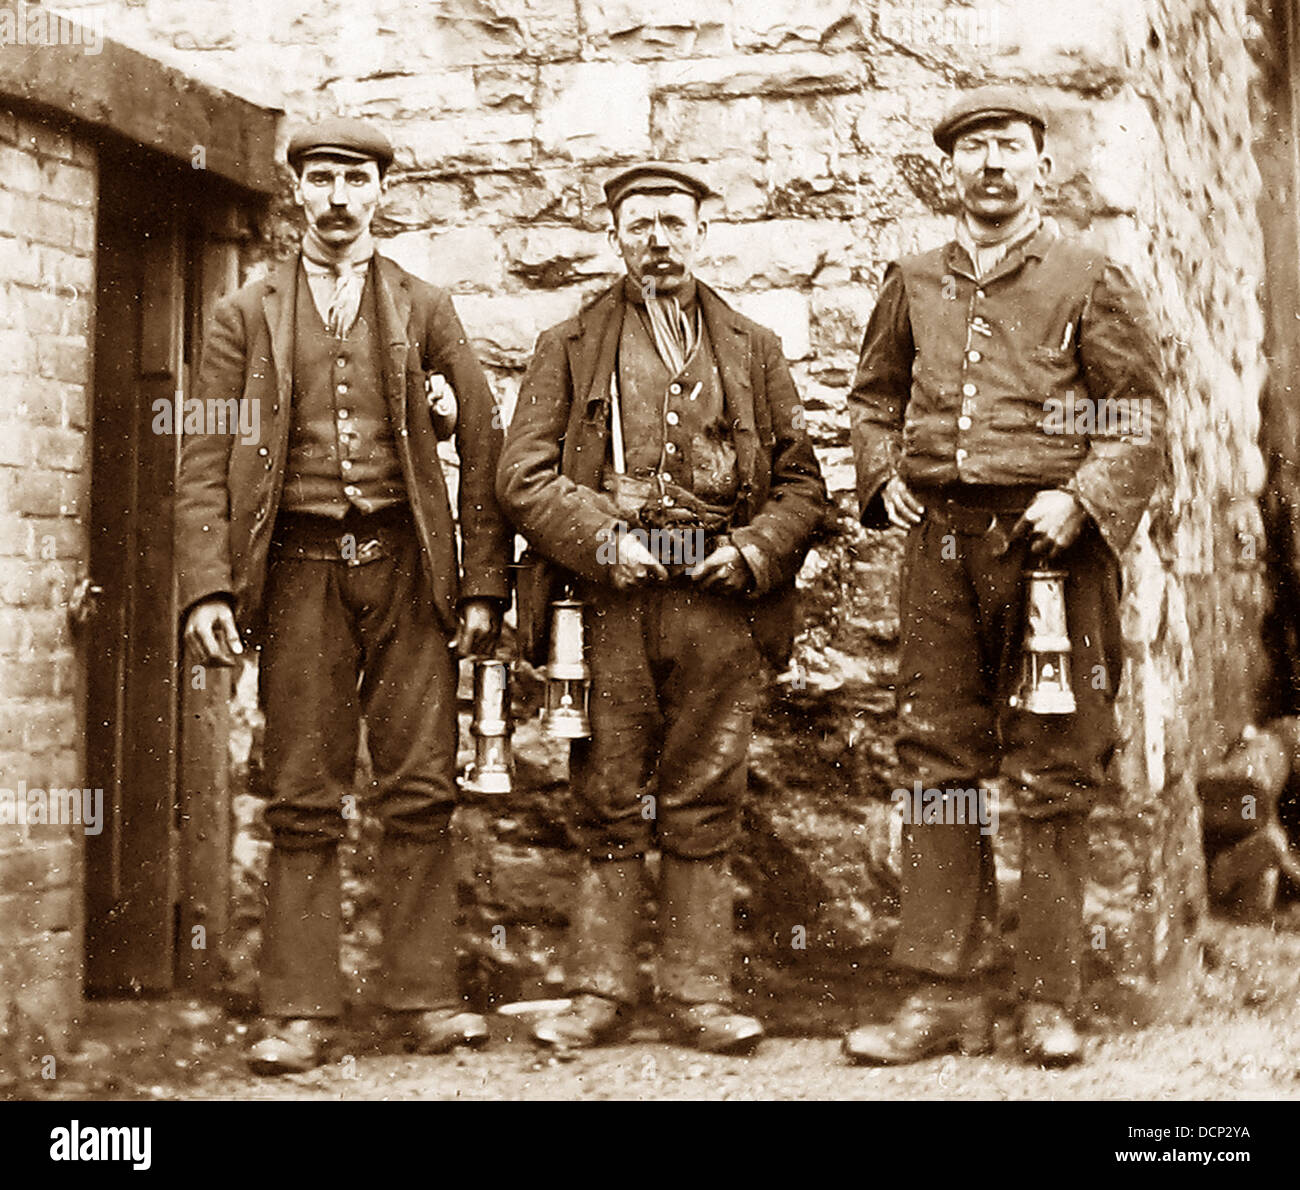 Miners / Hauliers early 1900s - Stock Image